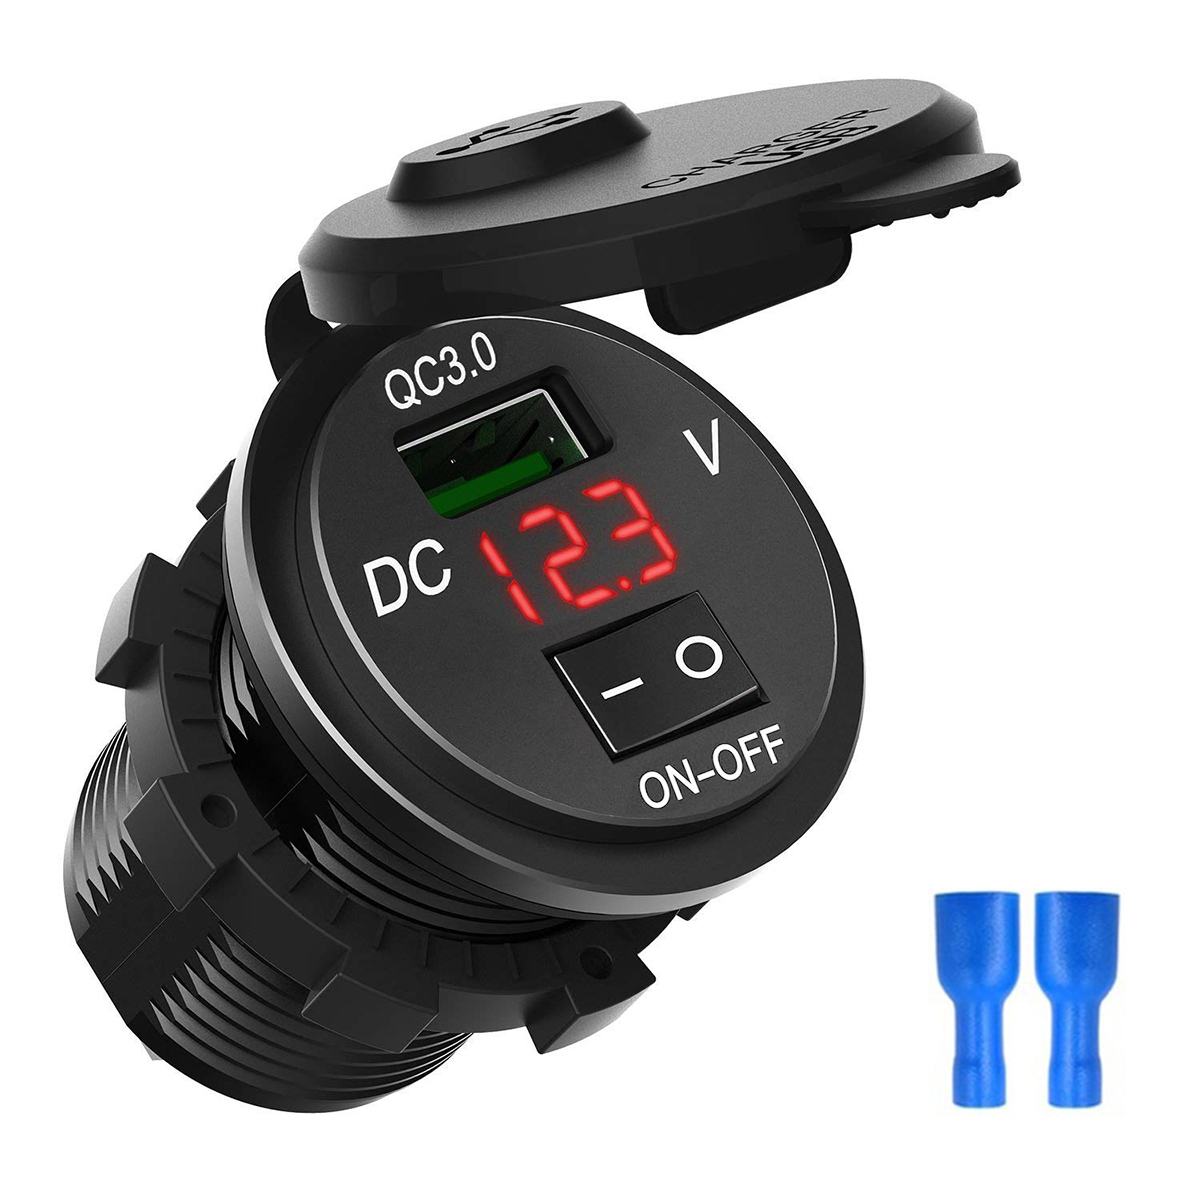 quick-charge-30-usb-car-charger-socket-digital-display-voltmeter-usb-charger-socket-with-on-off-switch-for-car-motorcycle-atv